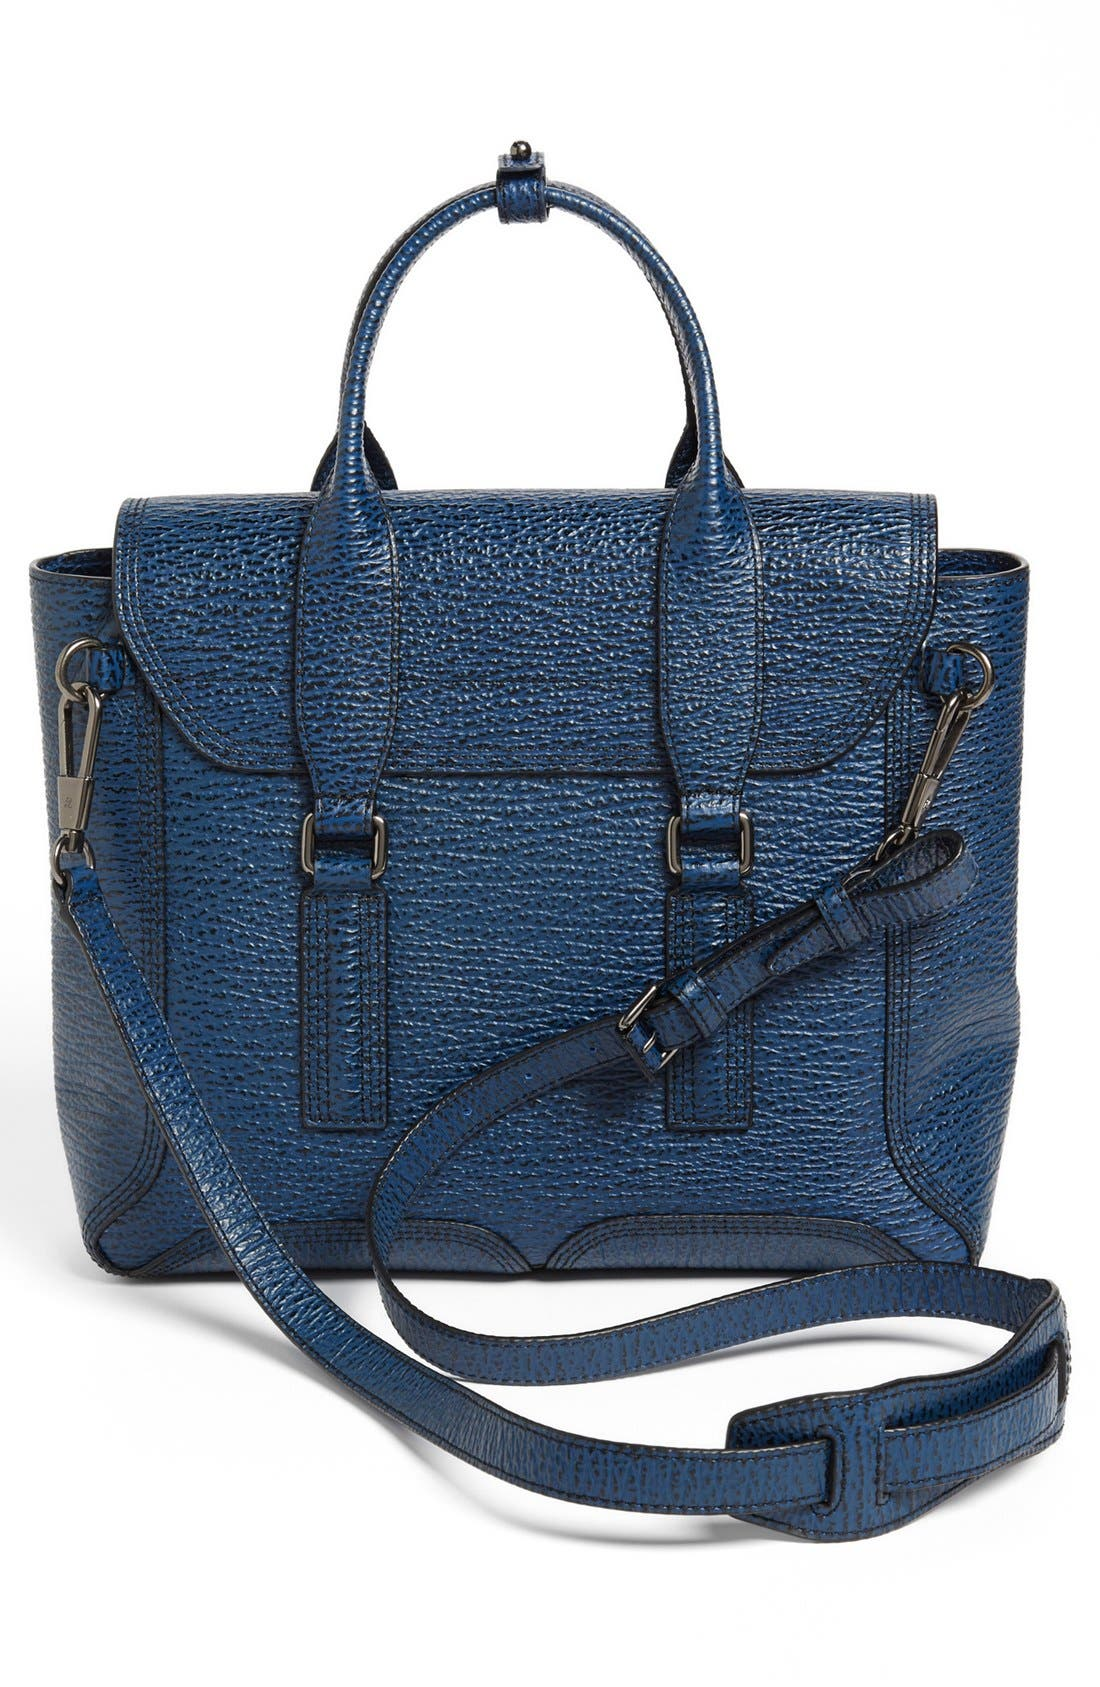 Alternate Image 4  - 3.1 Phillip Lim 'Medium Pashli' Shark Embossed Leather Satchel